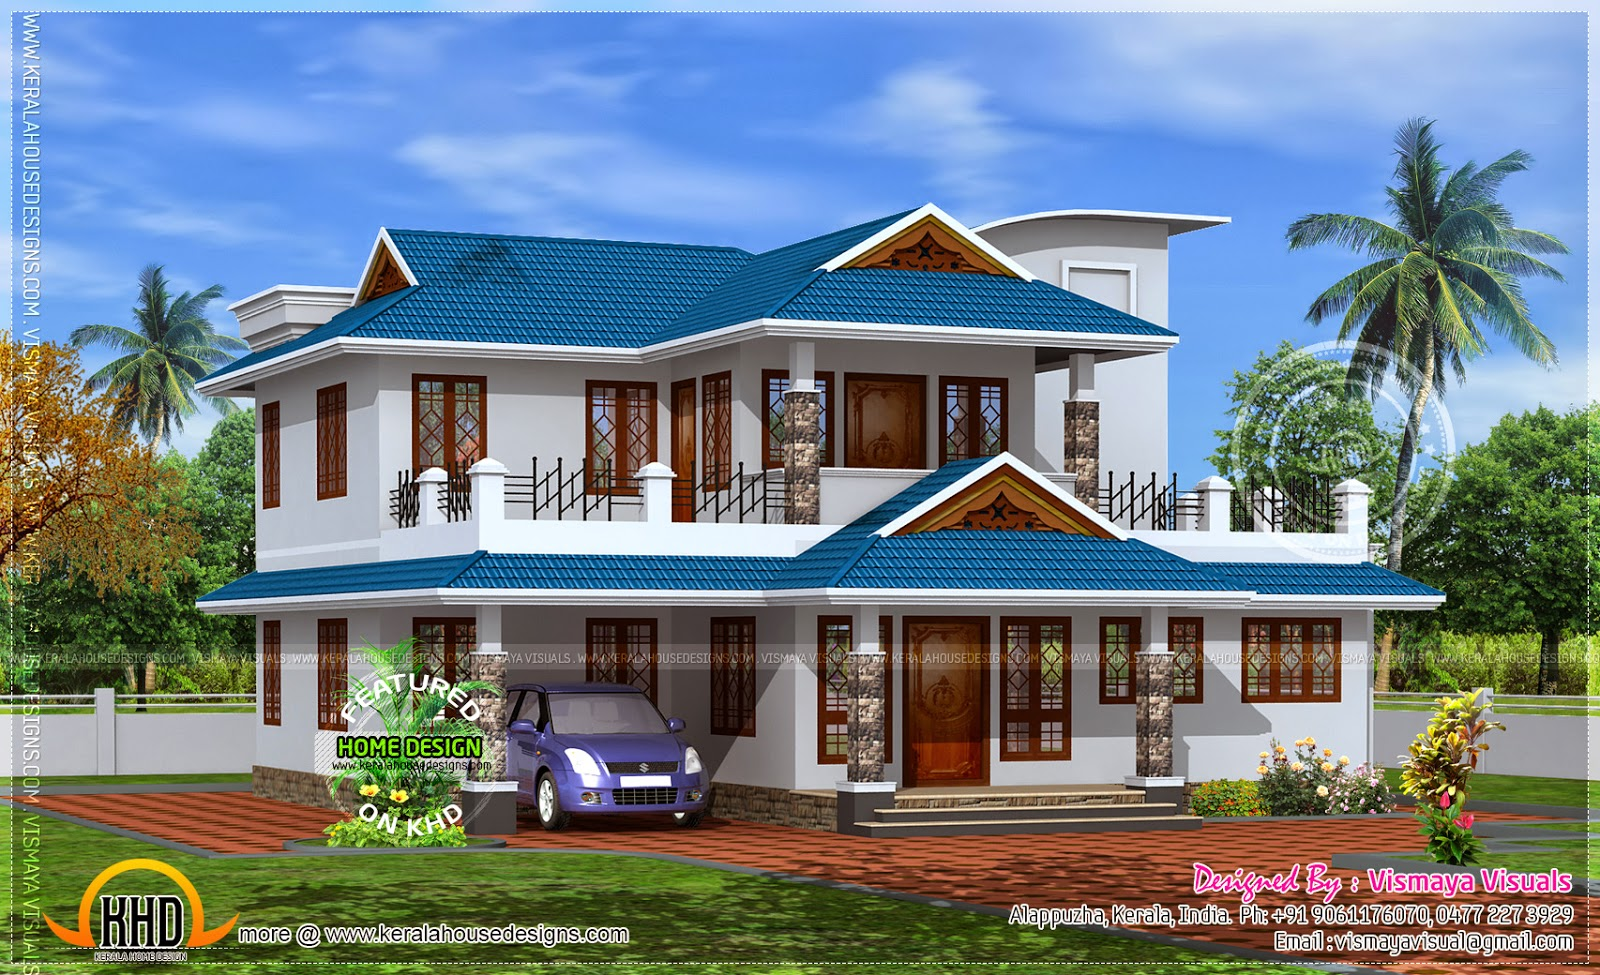 2350 sq feet home model in kerala home kerala plans - Kerala exterior model homes ...